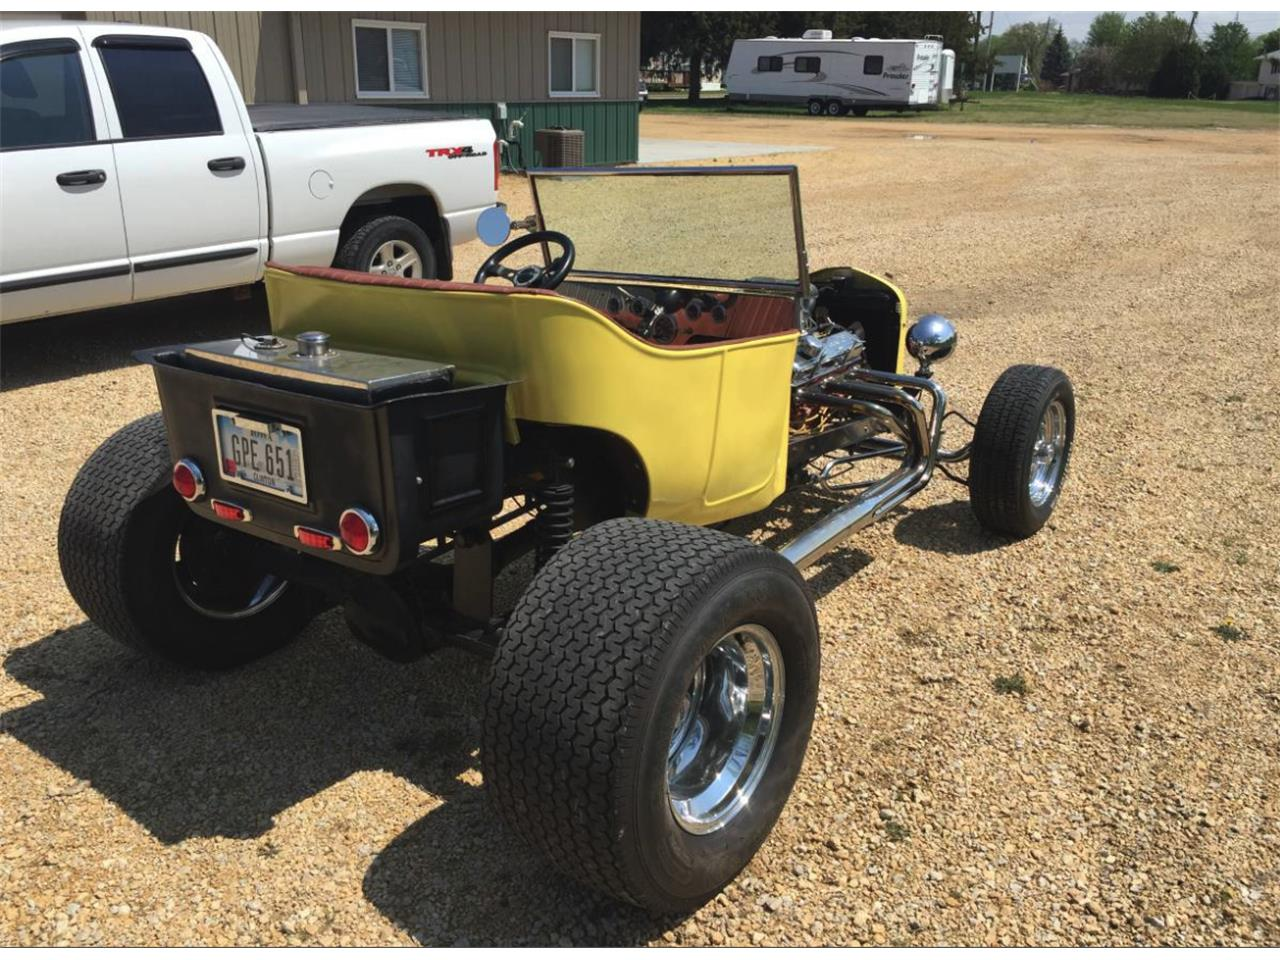 Large Picture of 1923 Ford T Bucket located in Camanche Iowa - $8,850.00 Offered by a Private Seller - NF5U